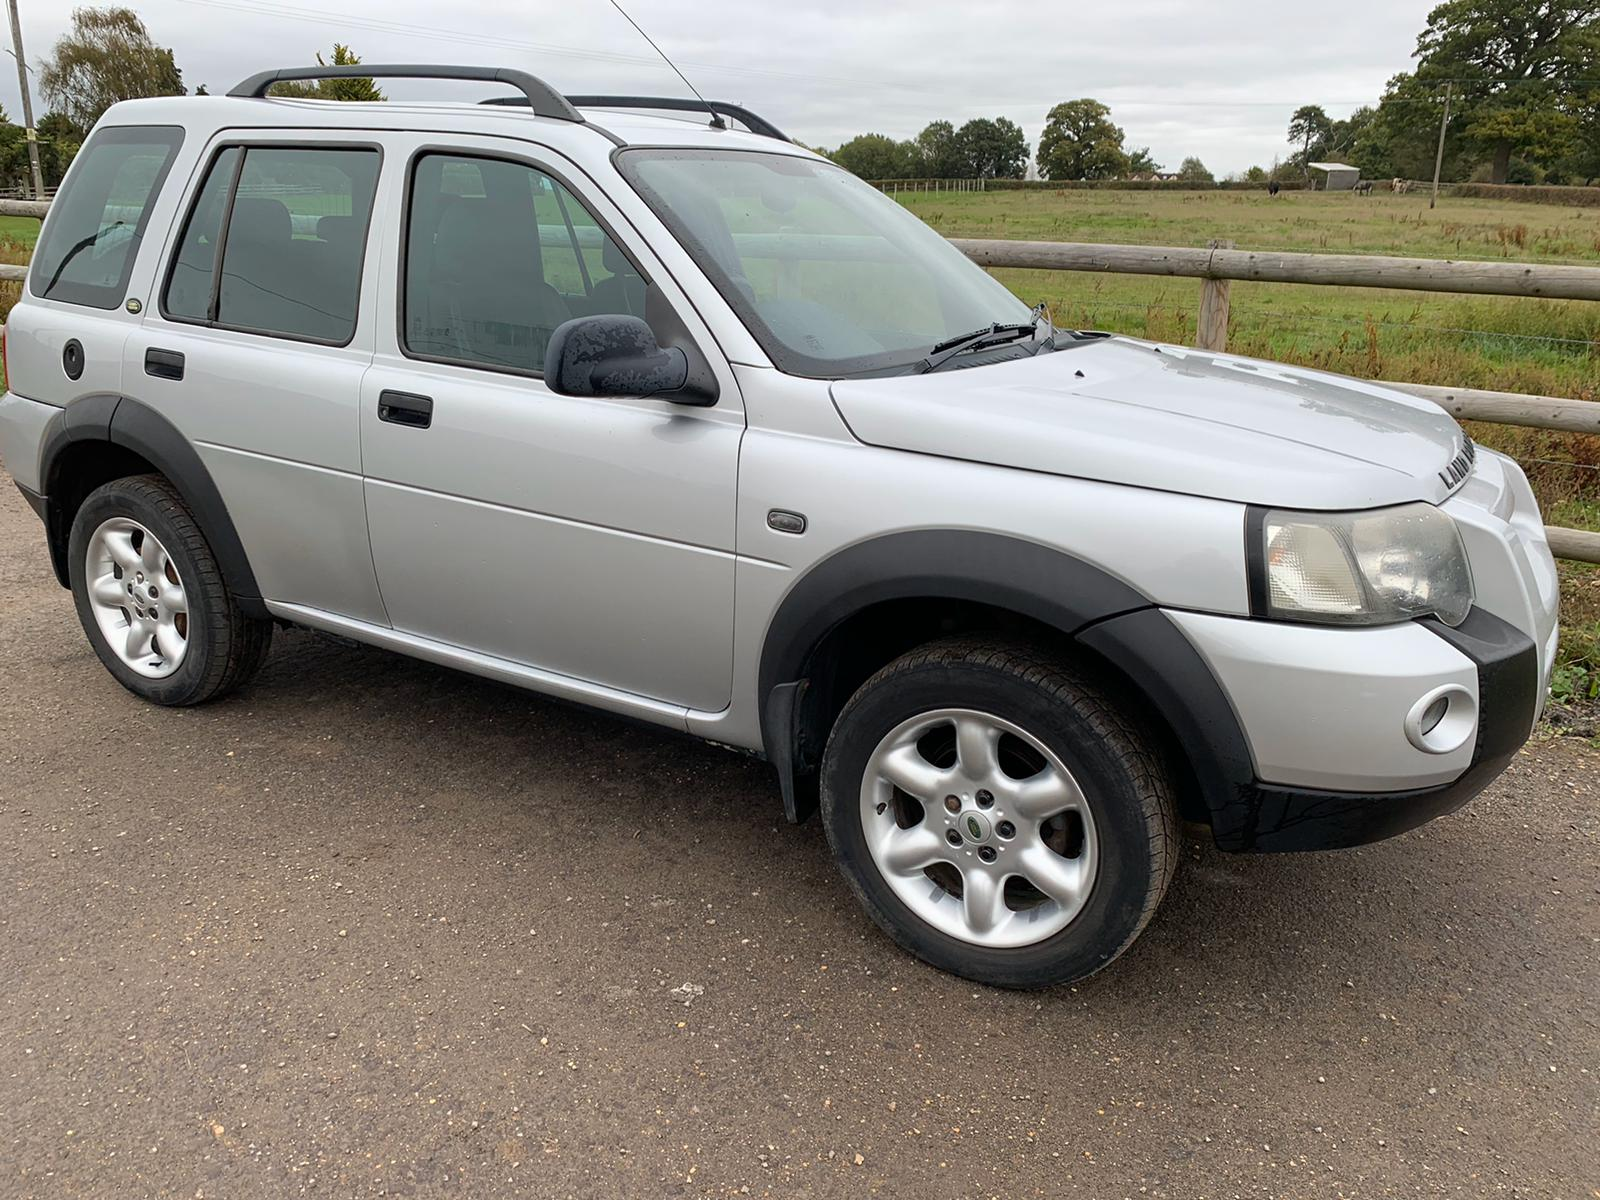 2005 Freelander Td4 manual